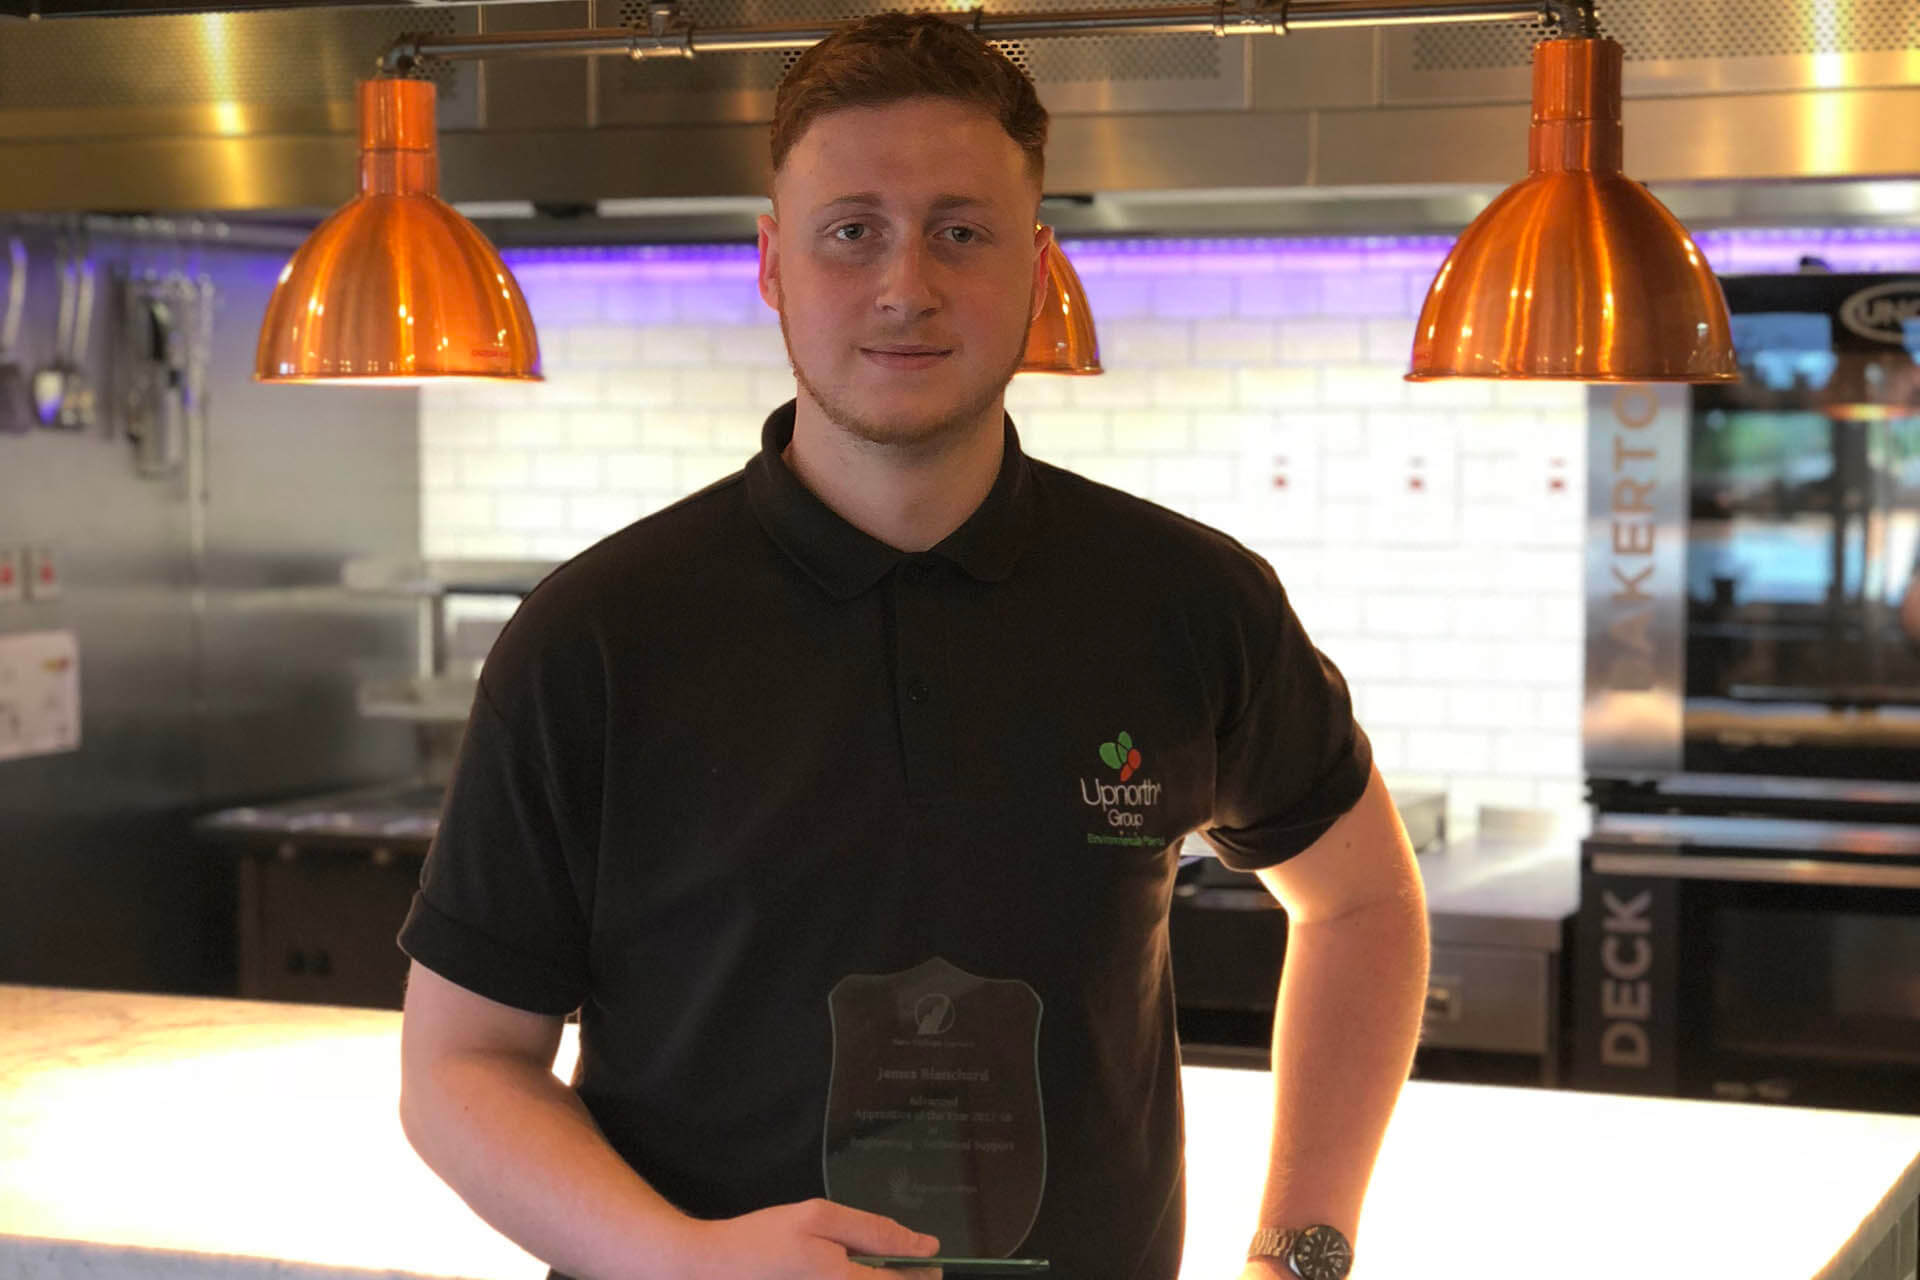 James Awarded Apprentice of the Year